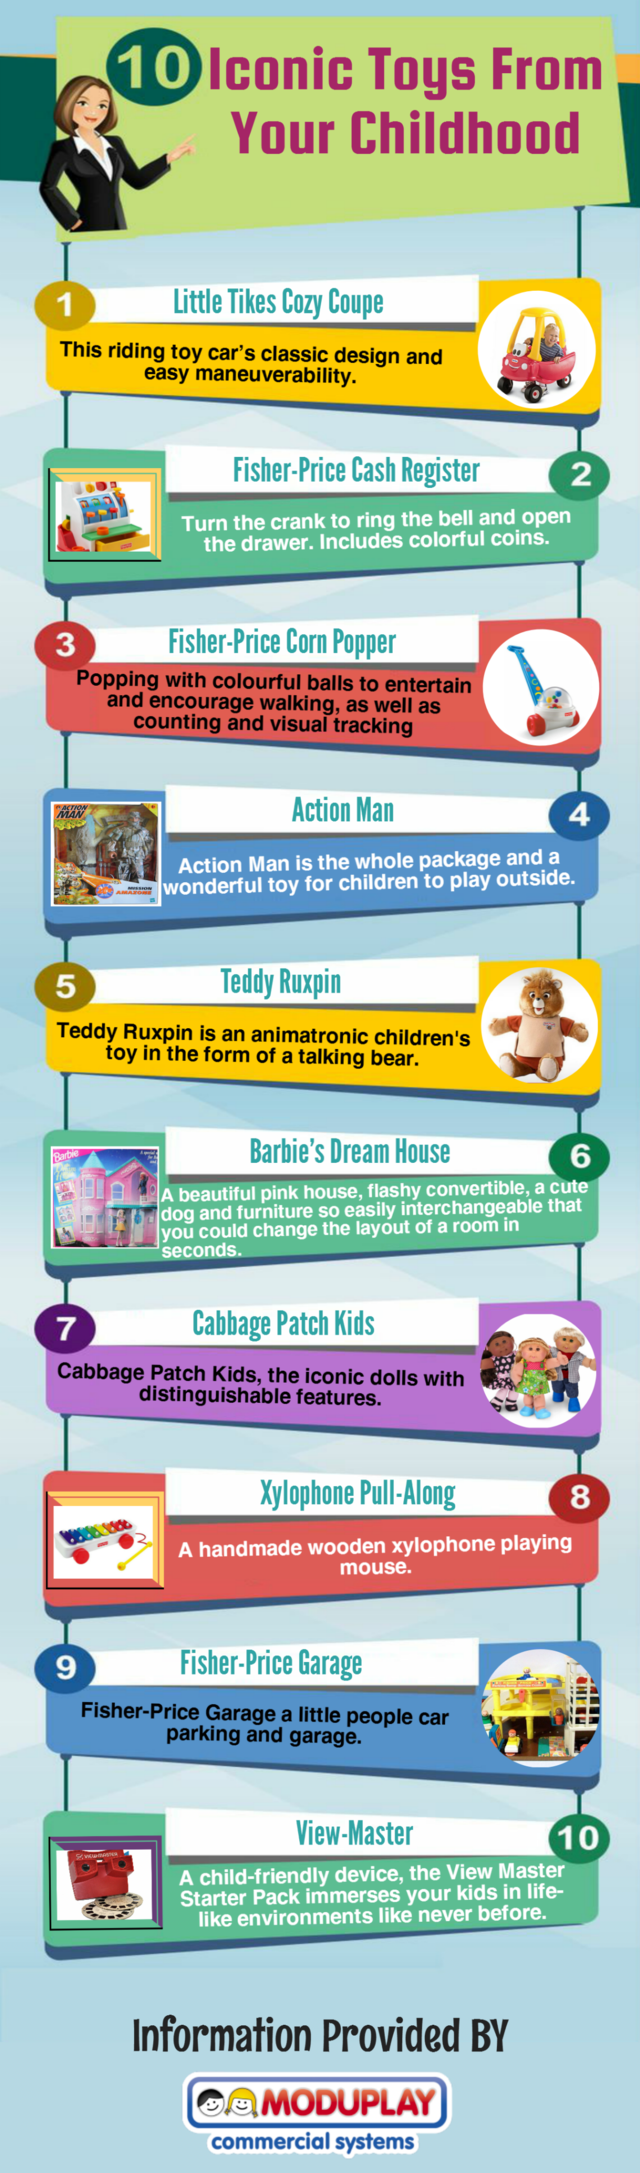 10 iconic toys from your childhood